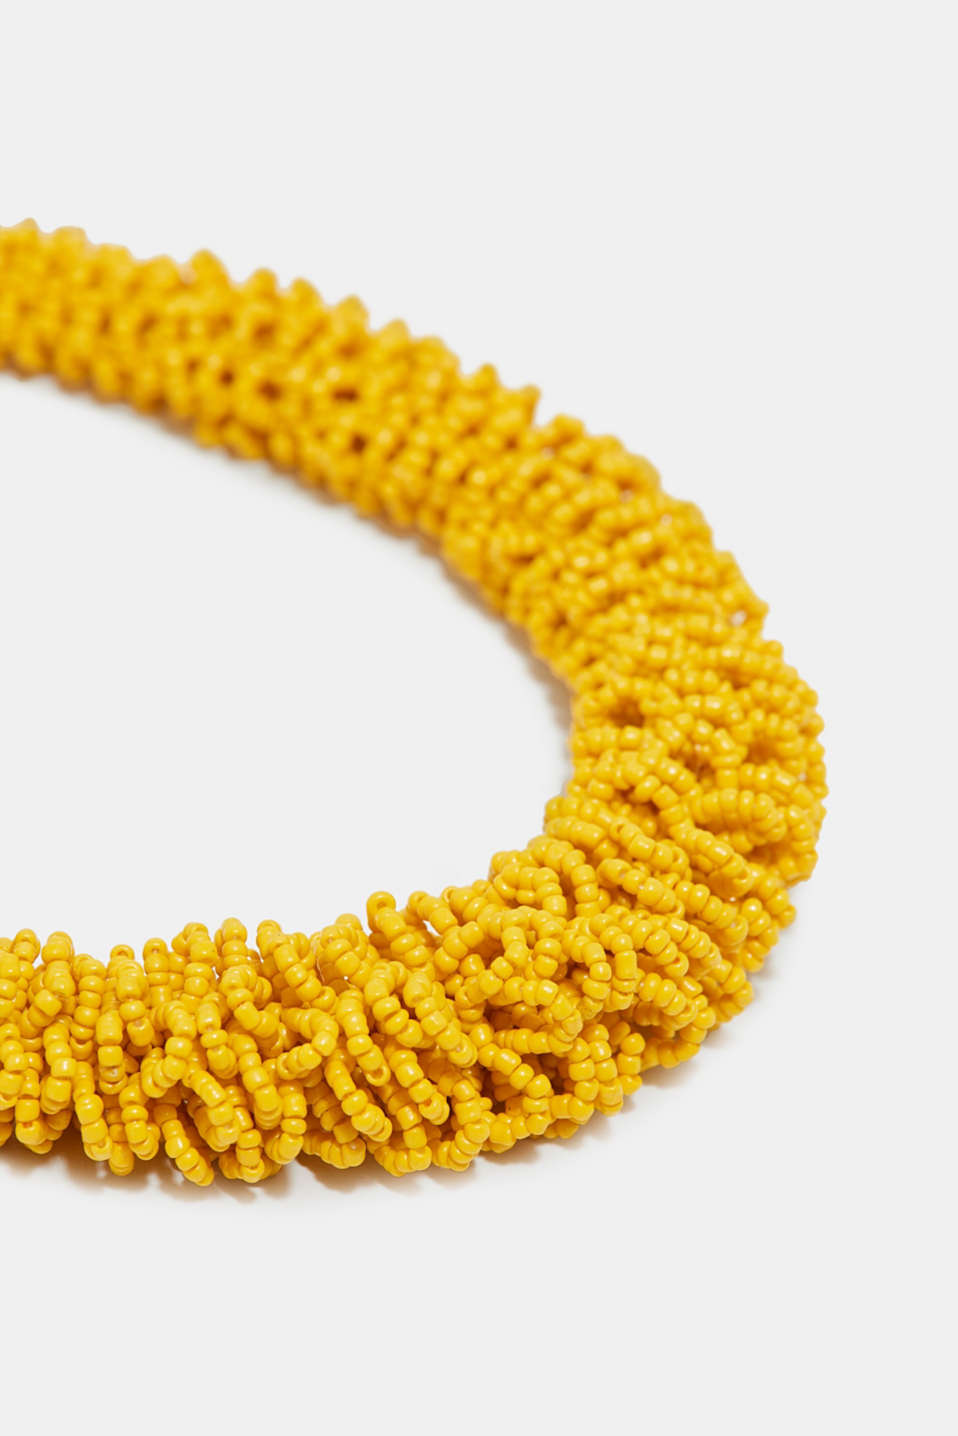 Three-dimensional necklace with beads